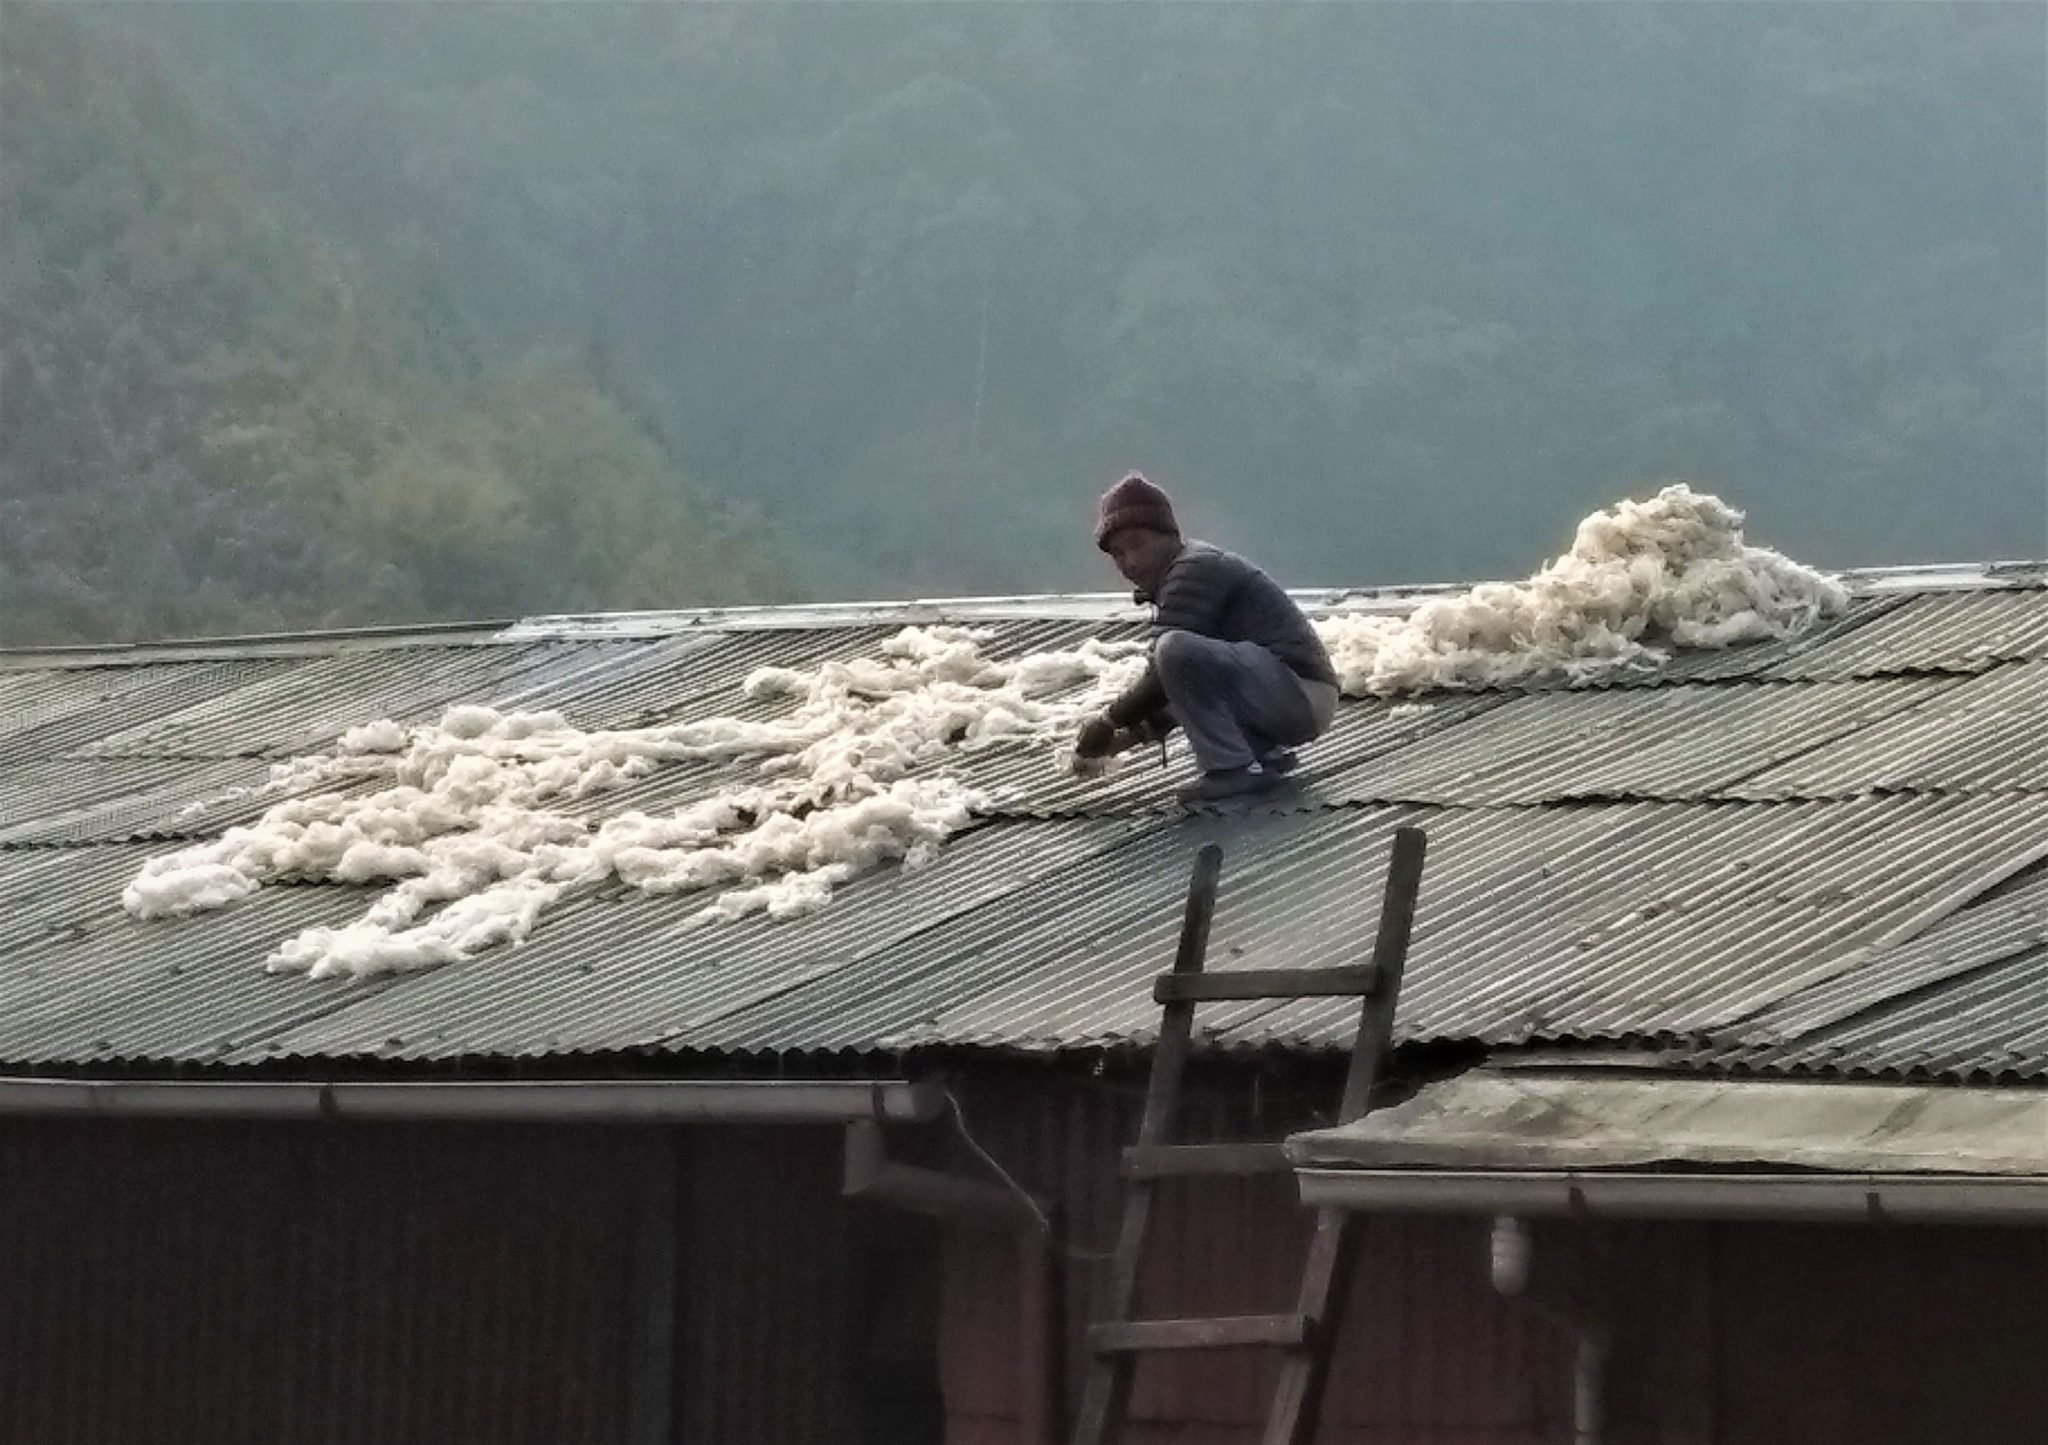 Drying the wool